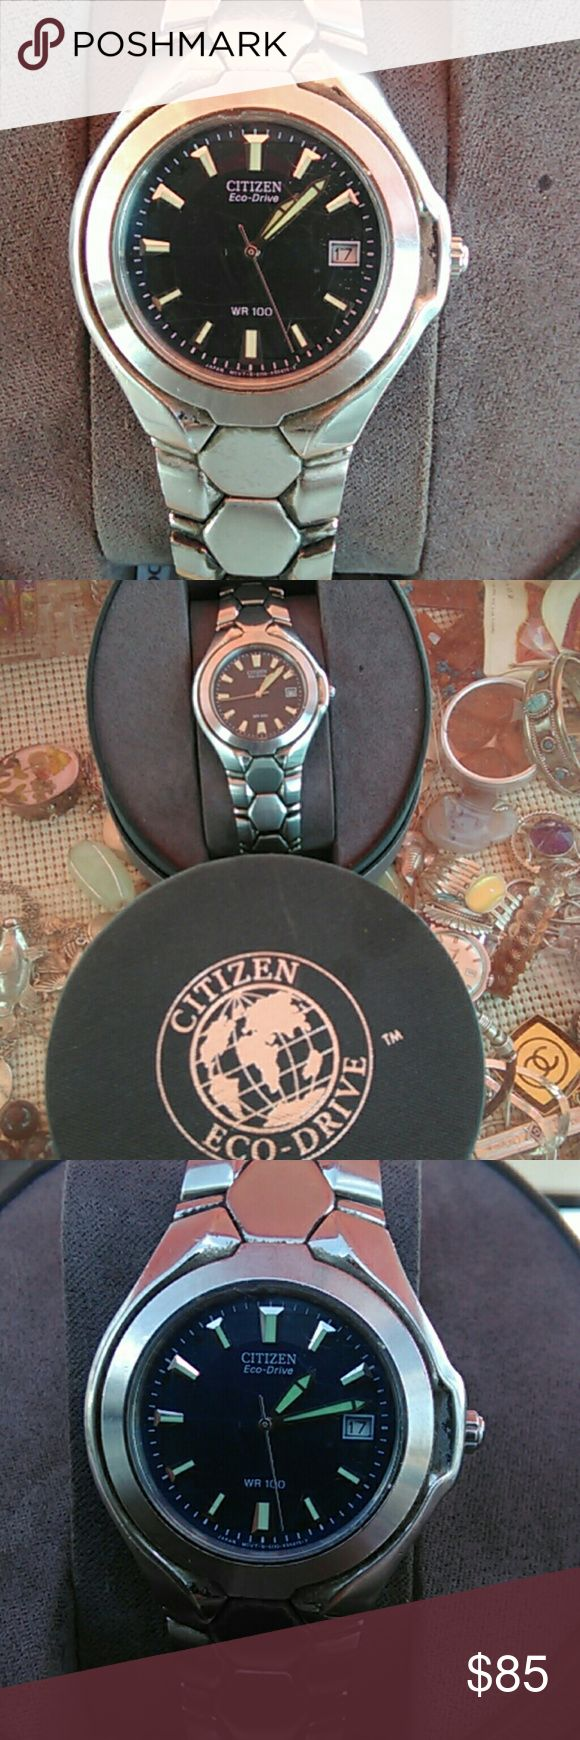 "Vintage citizen eco-drive mens watch with case Stainless steel case and bracelet Running and keeping time Bracelet size 9"" wrist  What you see in pix what you will get Citizen Accessories Watches"